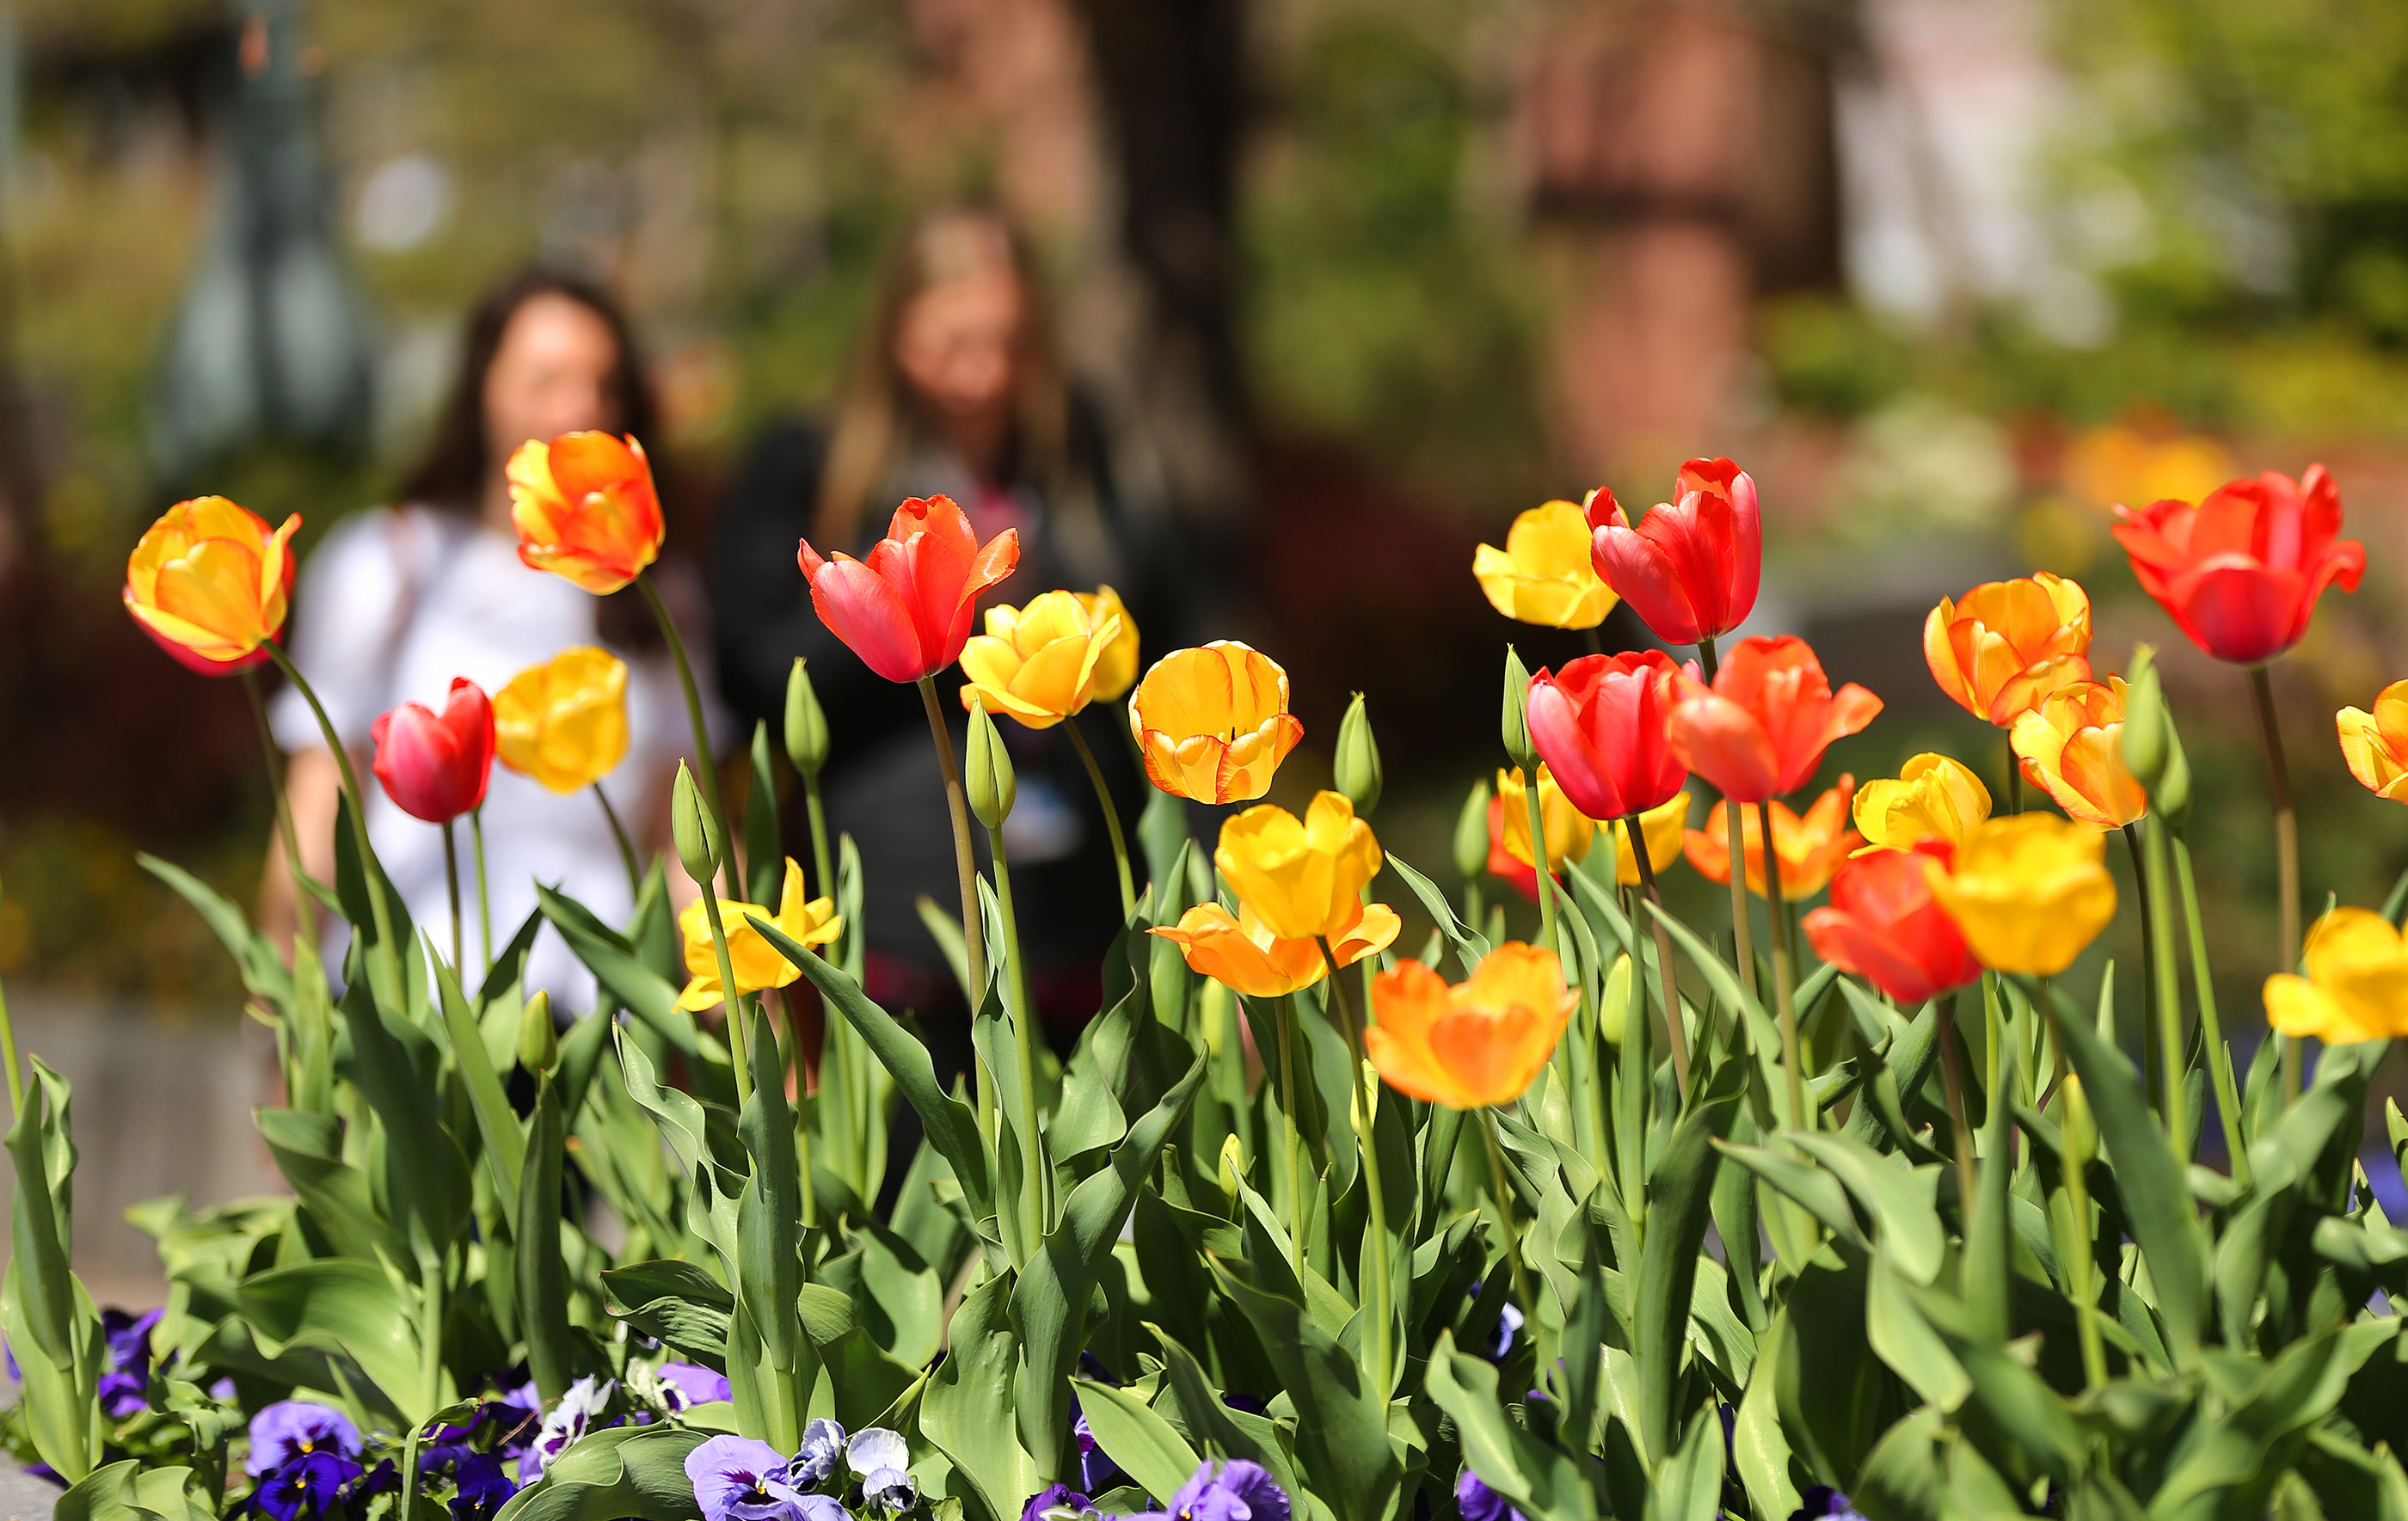 Visitors walk as flowers adorn the grounds of The Salt Lake Temple in Salt Lake City on Friday, April 19, 2019. Church officials announced renovations and changes to it and the grounds.